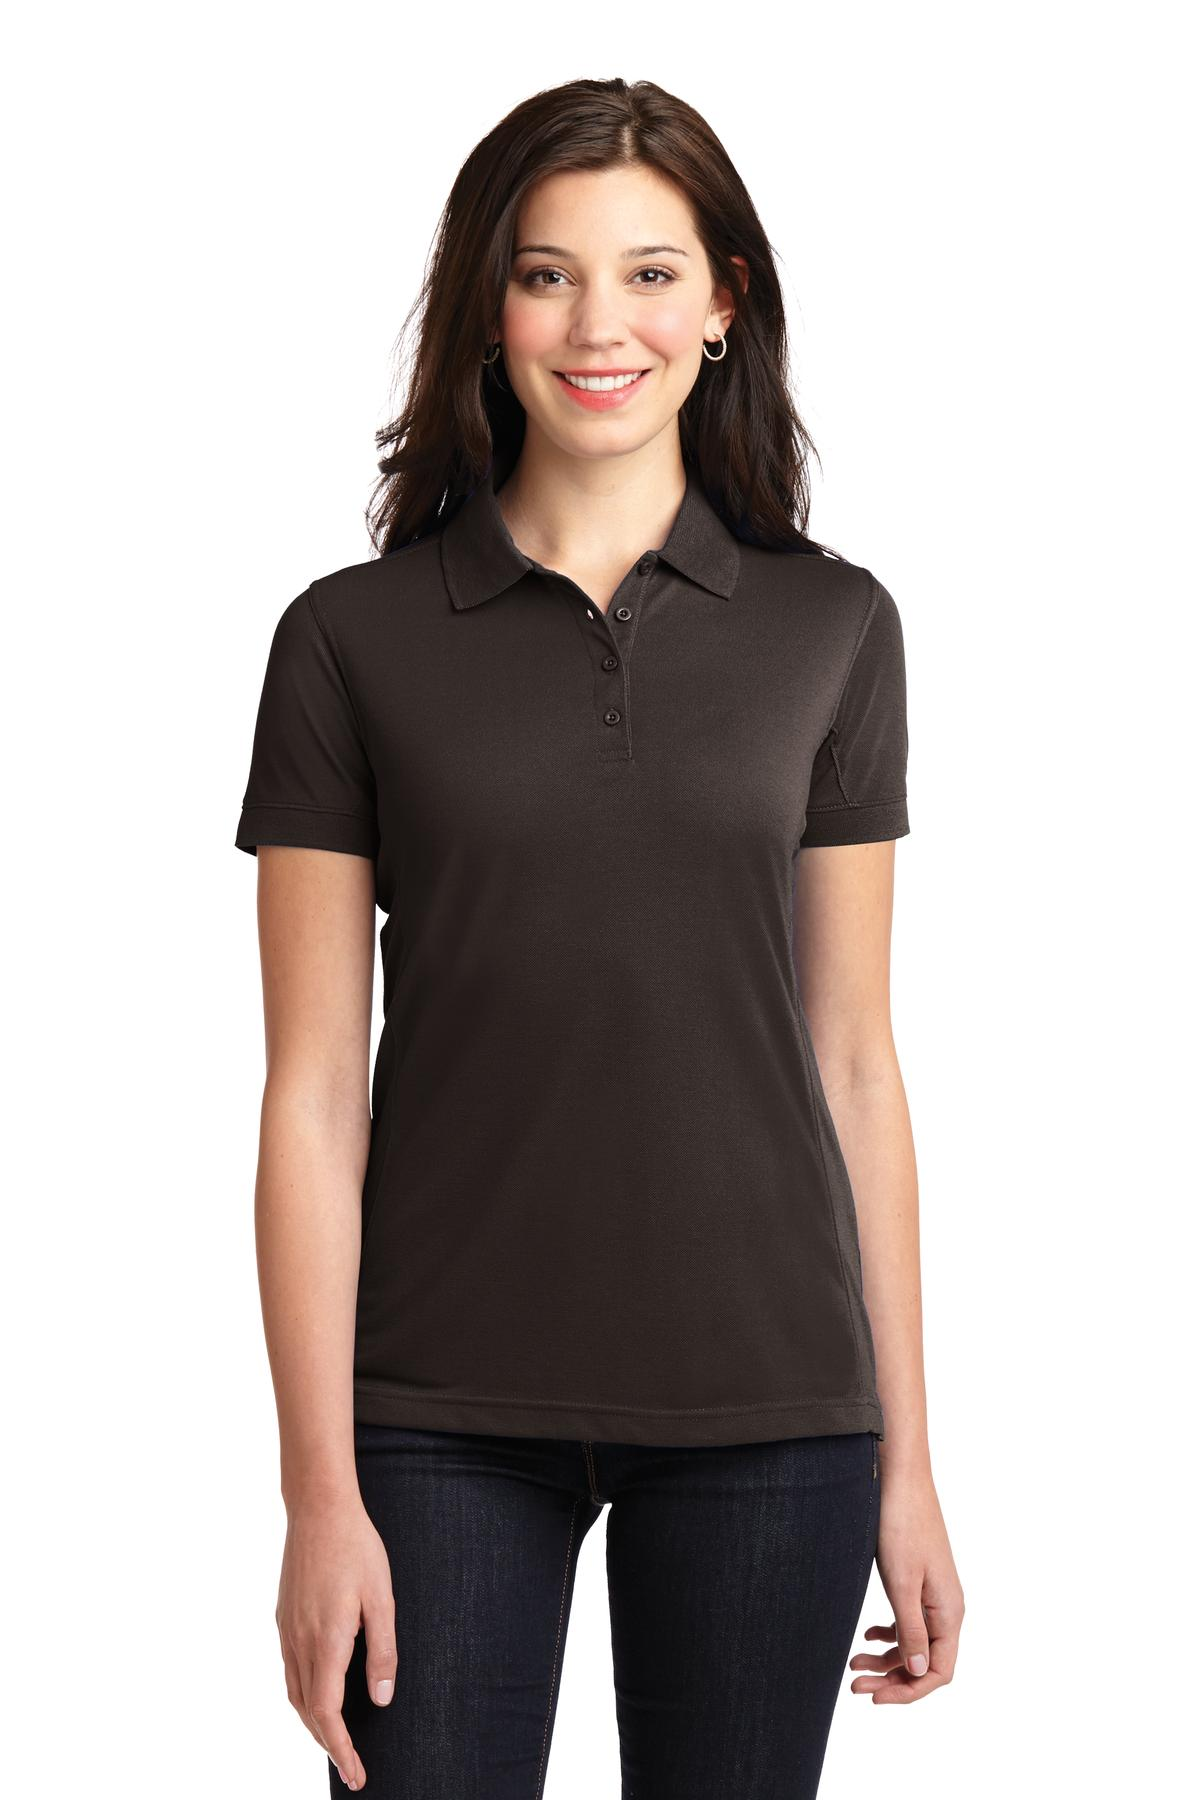 Port Authority ®  Ladies 5-in-1 Performance Pique Polo. L567 - Chocolate Brown